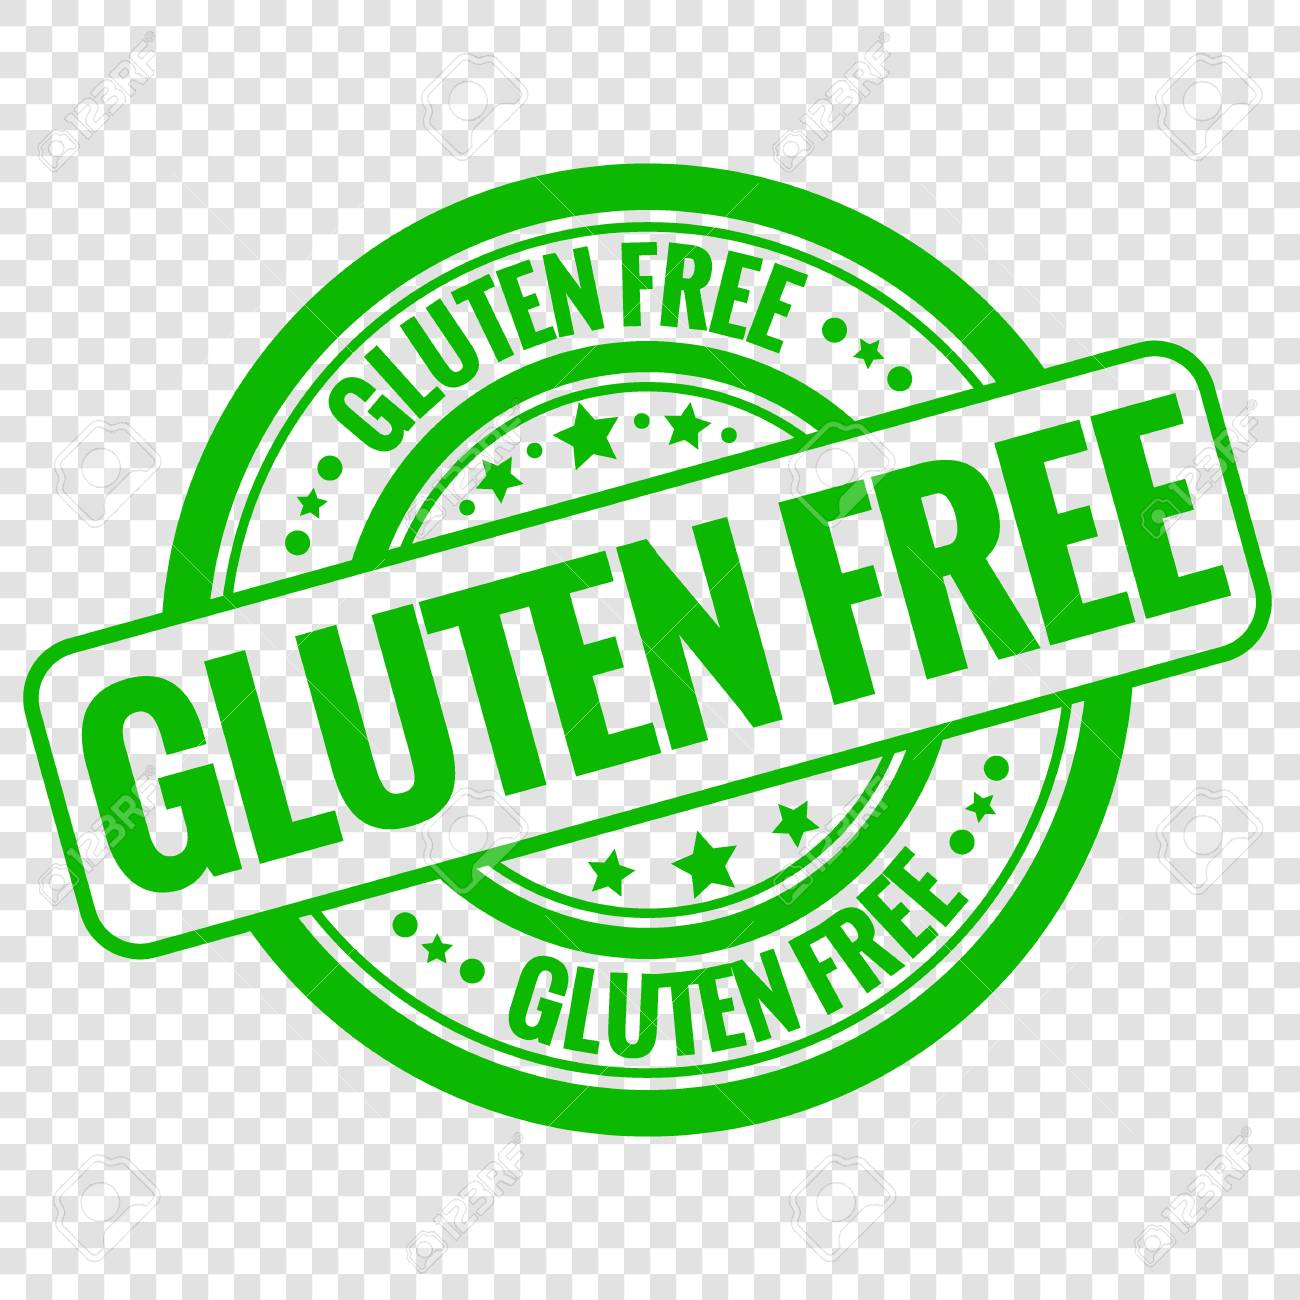 vector gluten free stamp isolated on transparent background royalty